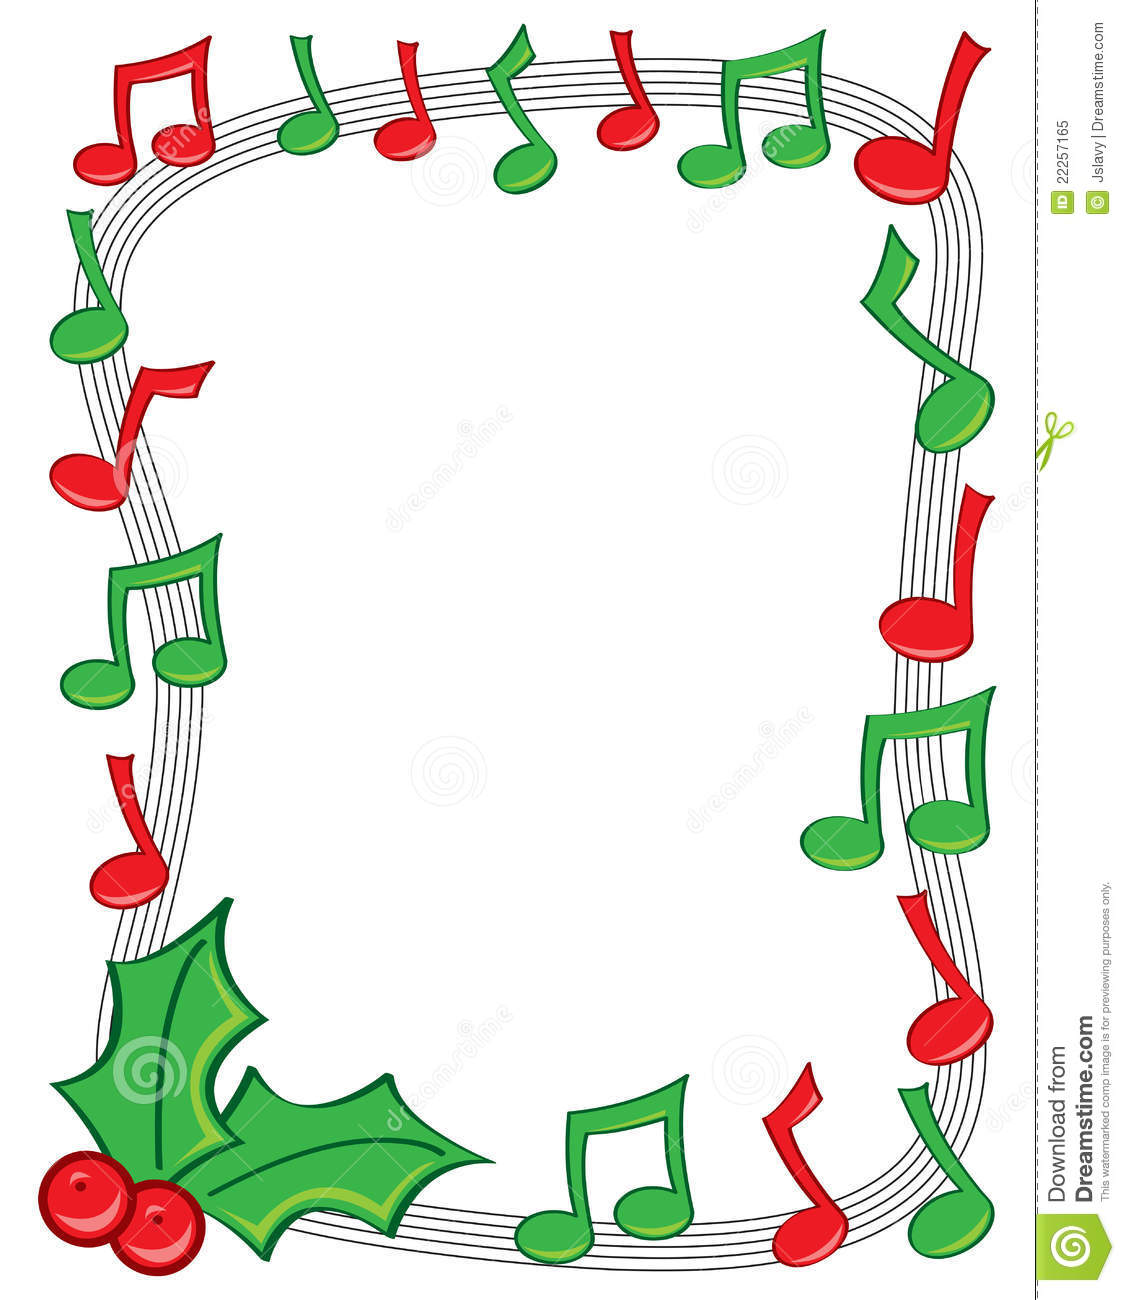 clip royalty free download Christmas choir free download. Caroling clipart border.